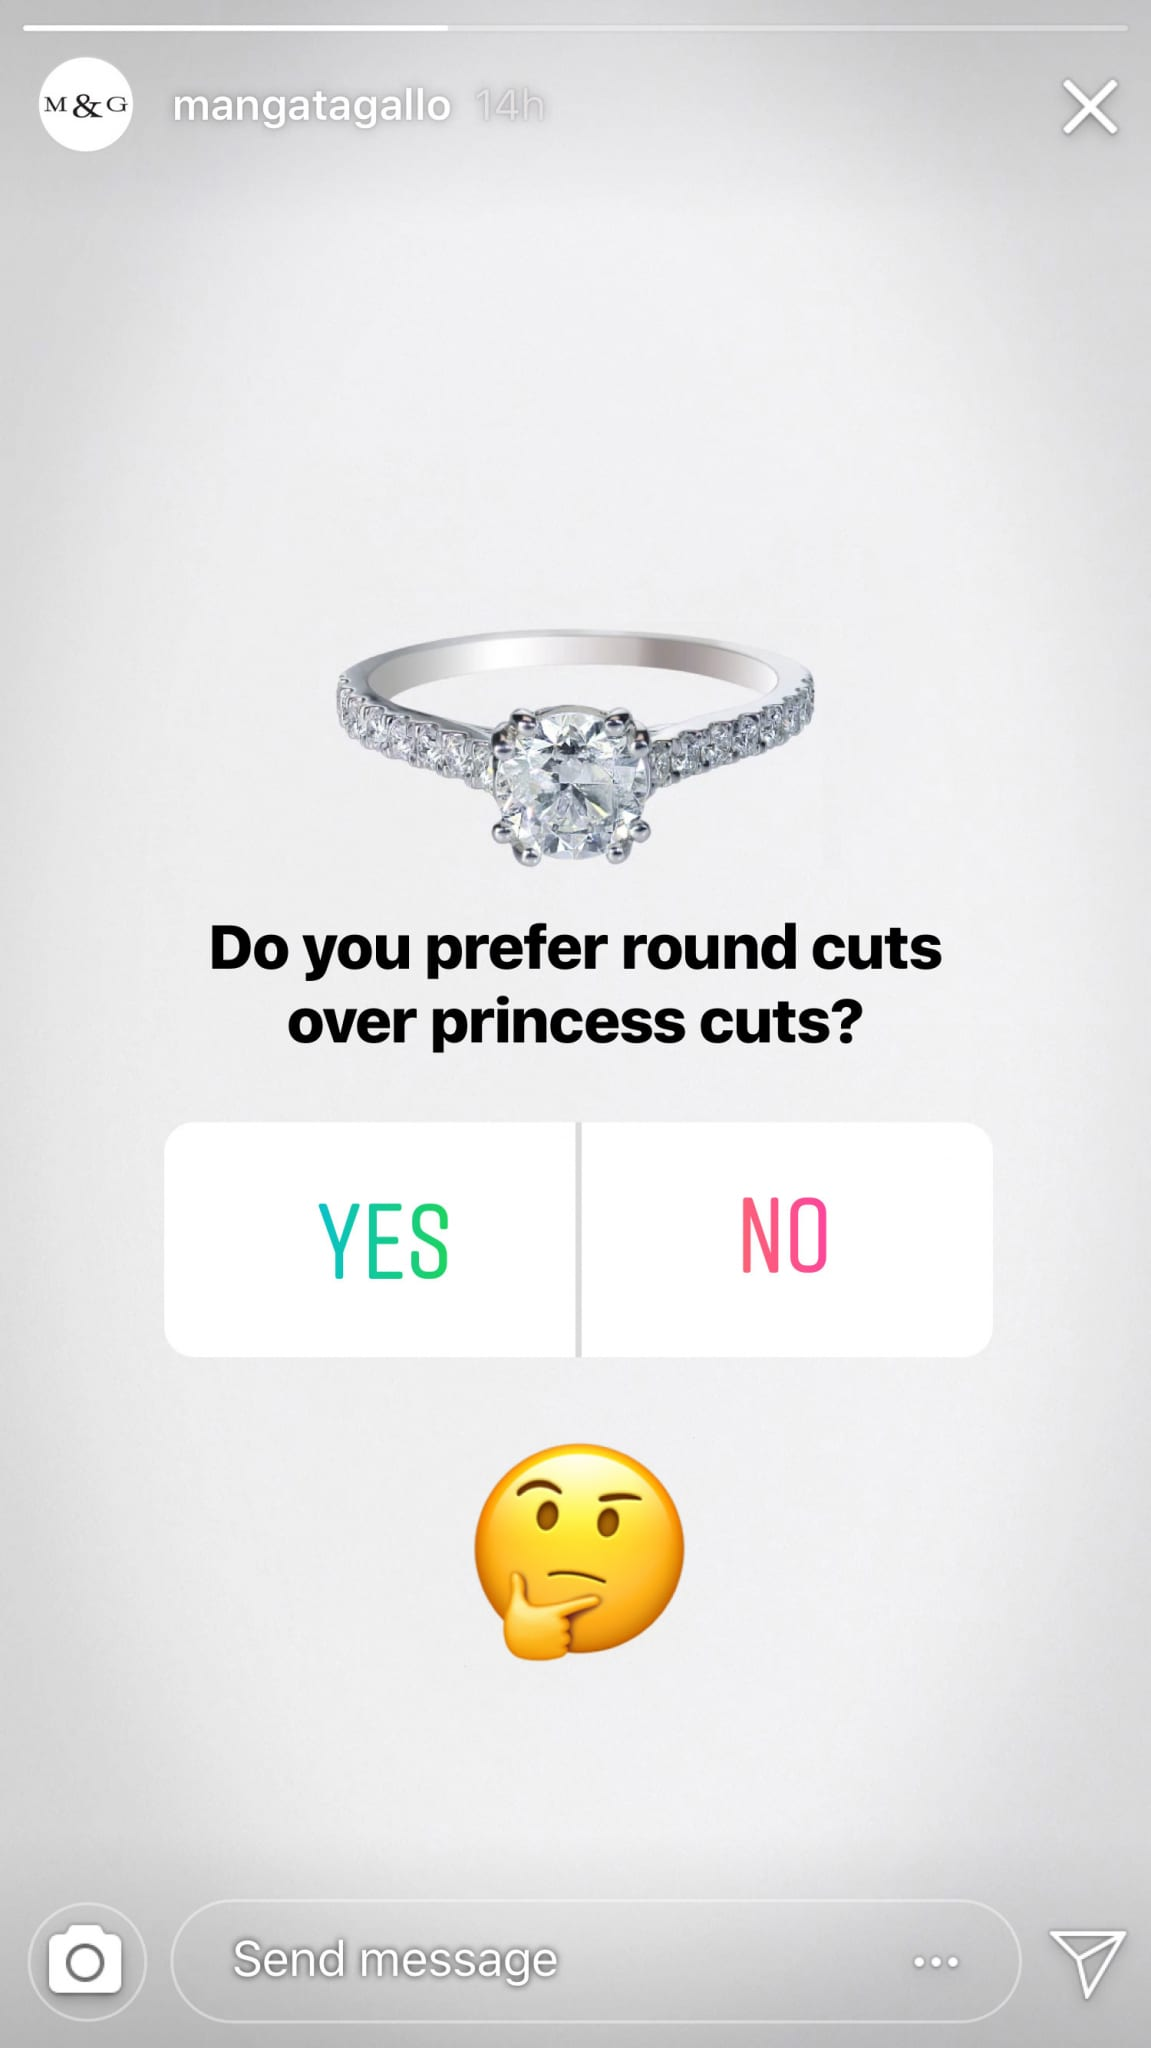 Instagram reveals how jewellers can use Stories to bolster business